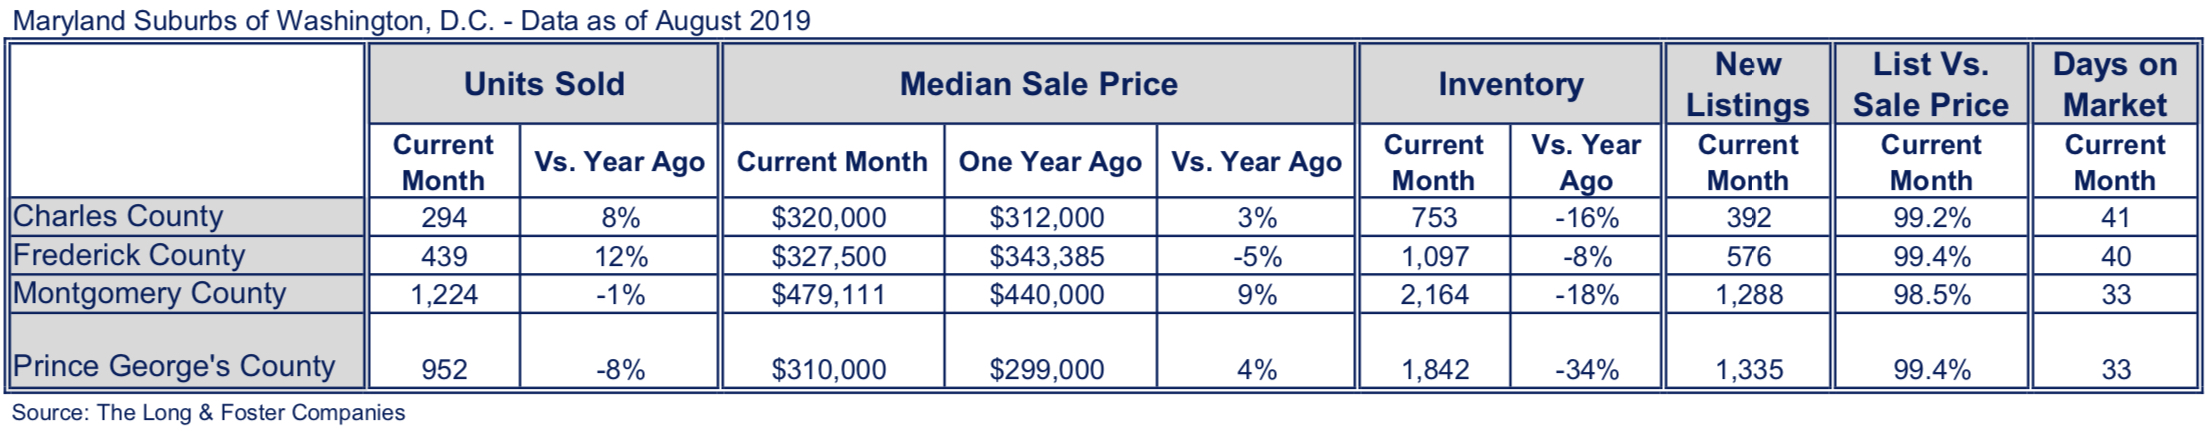 Maryland Suburbs Market Minute Chart August 2019